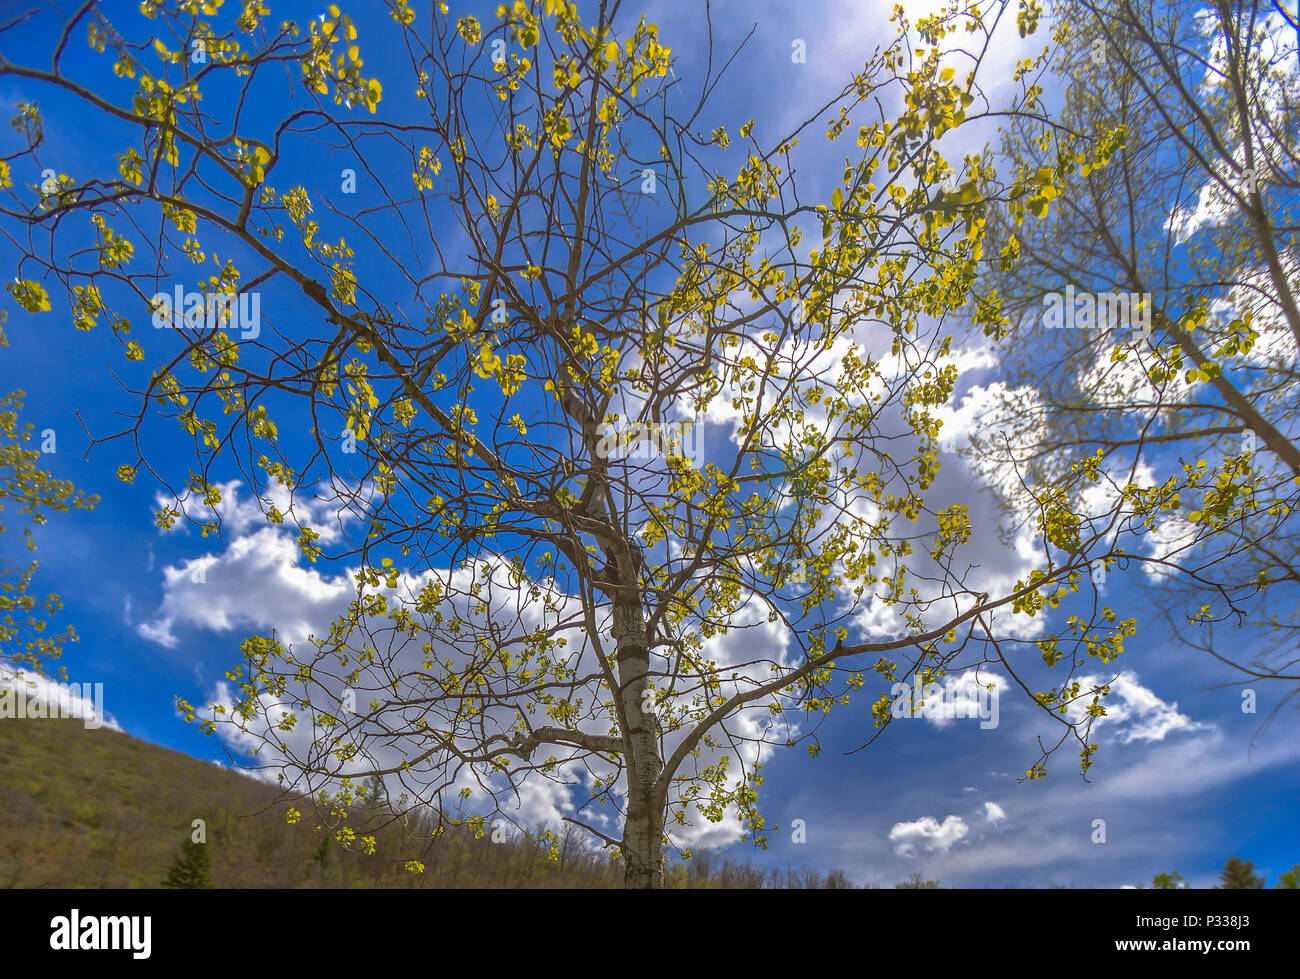 The Utah State Tree Quaking Aspen On A Hike In Big Springs Park Provo Stock Photo Alamy